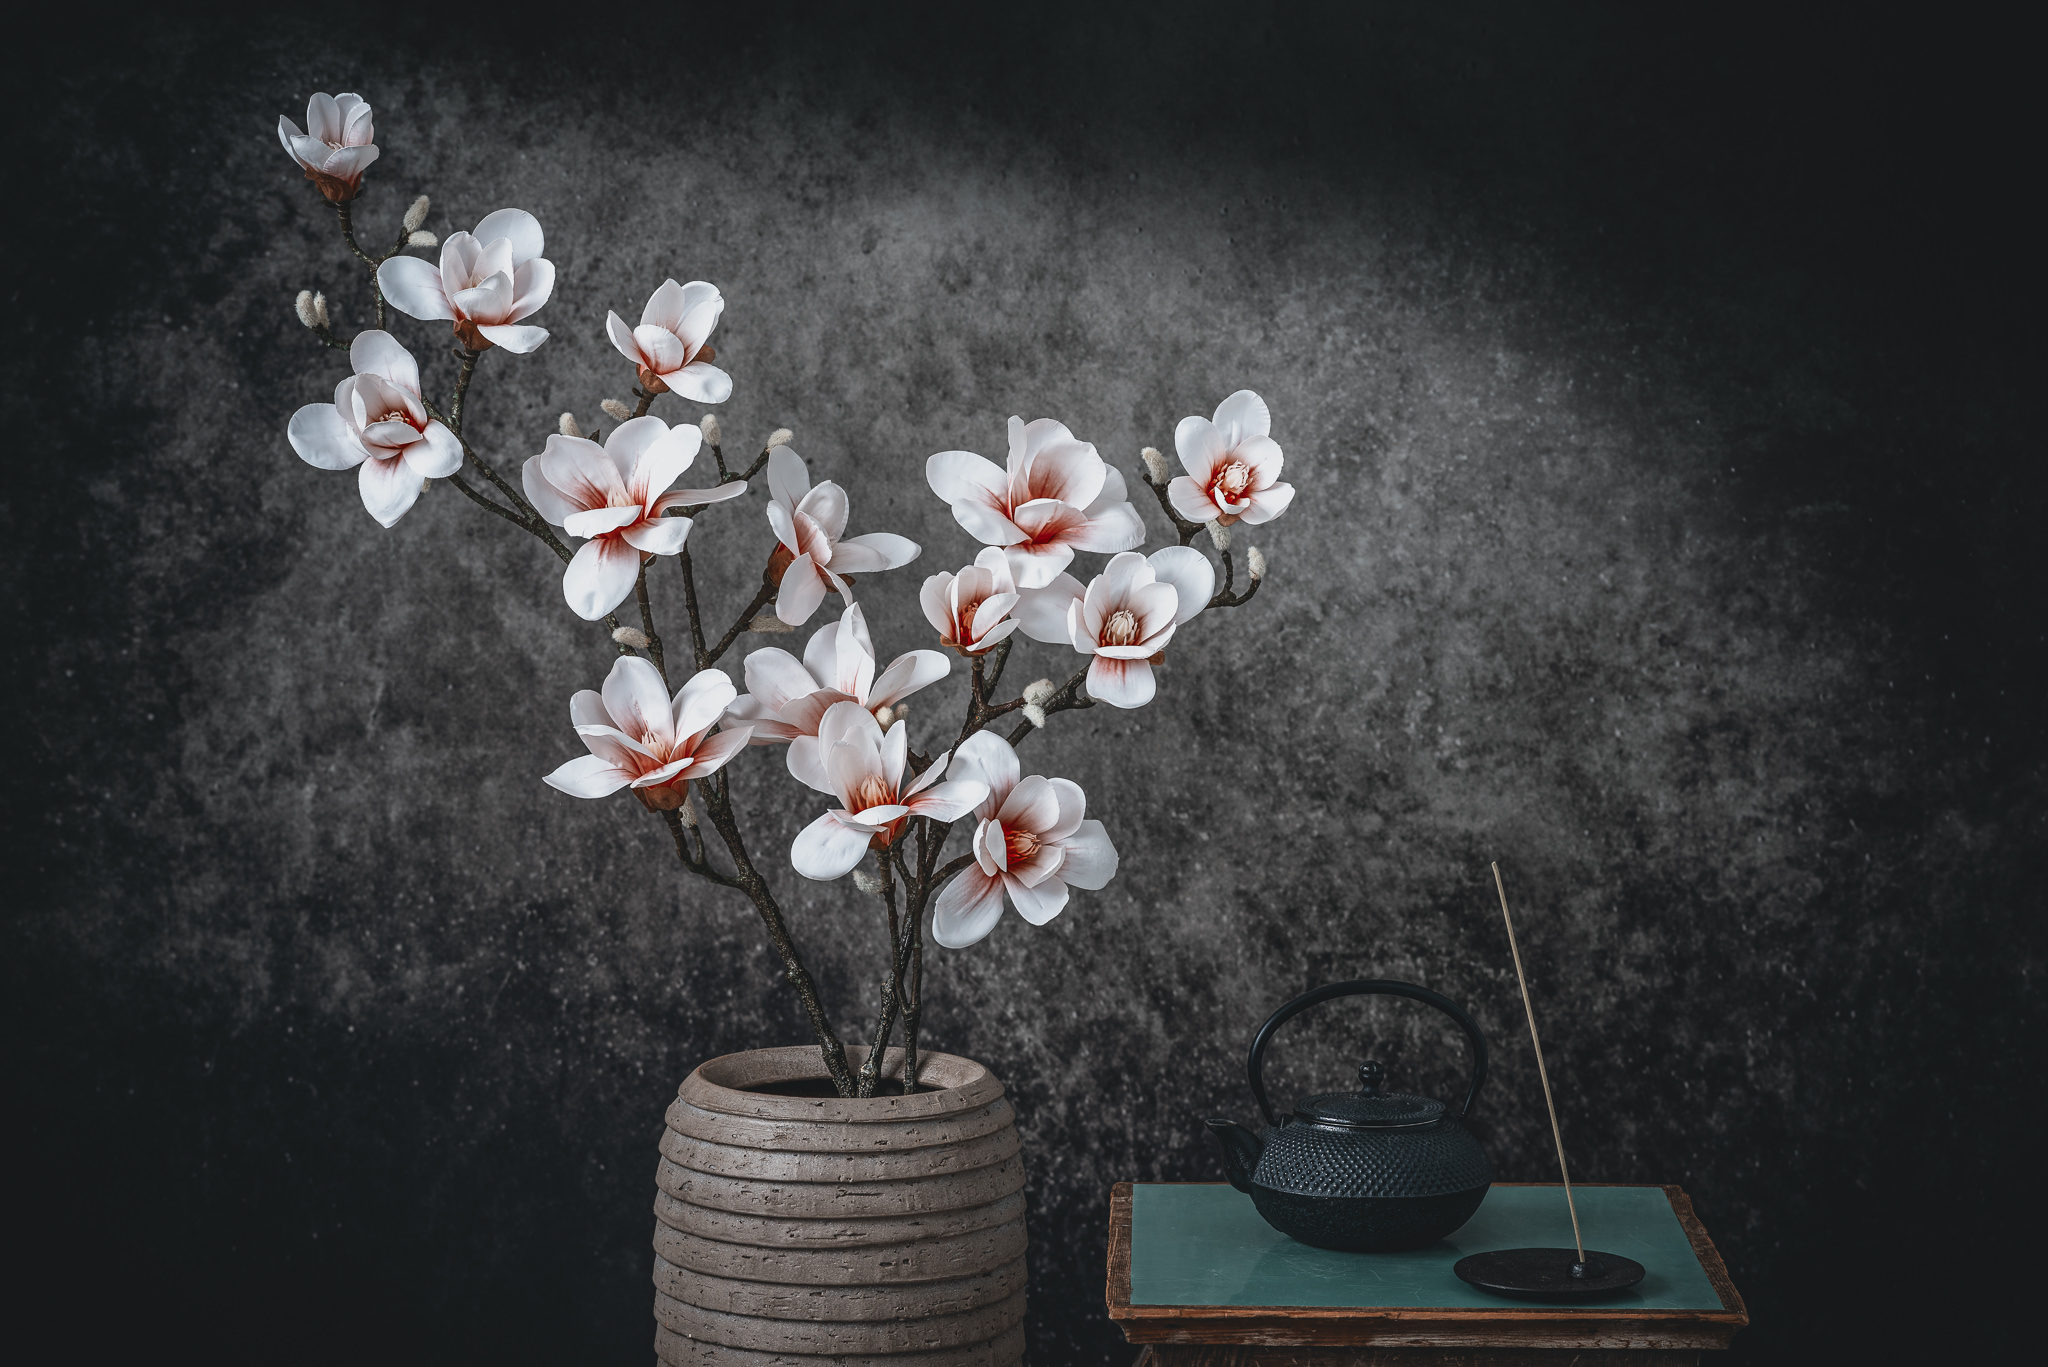 Magnolias in Japan Still Life Photograph as Cover Art